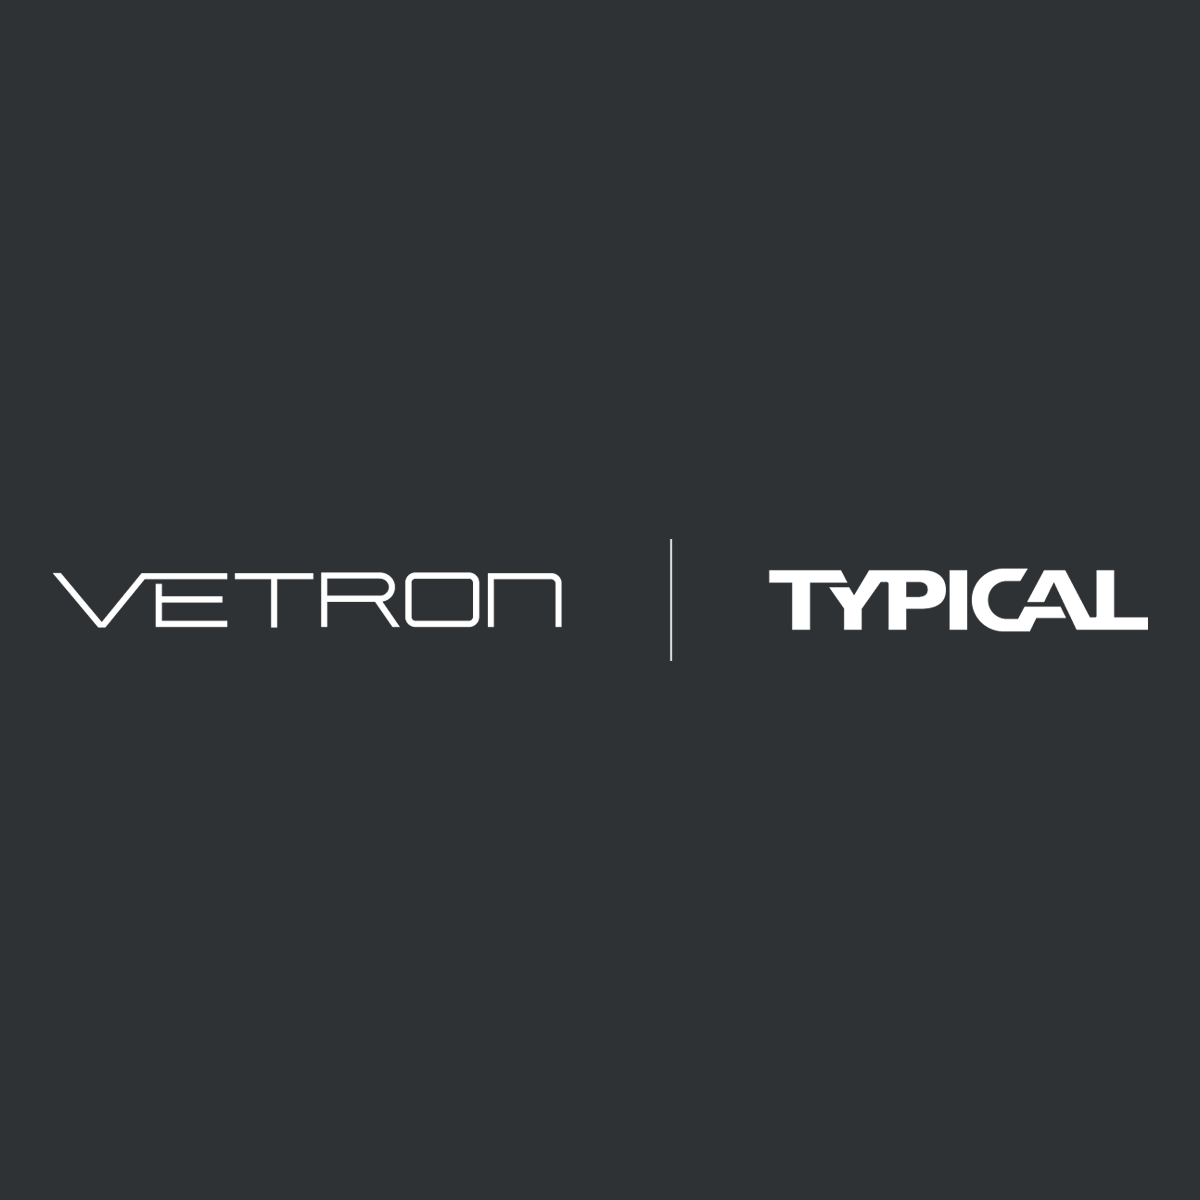 vetron typical vetron typical europe gmbh